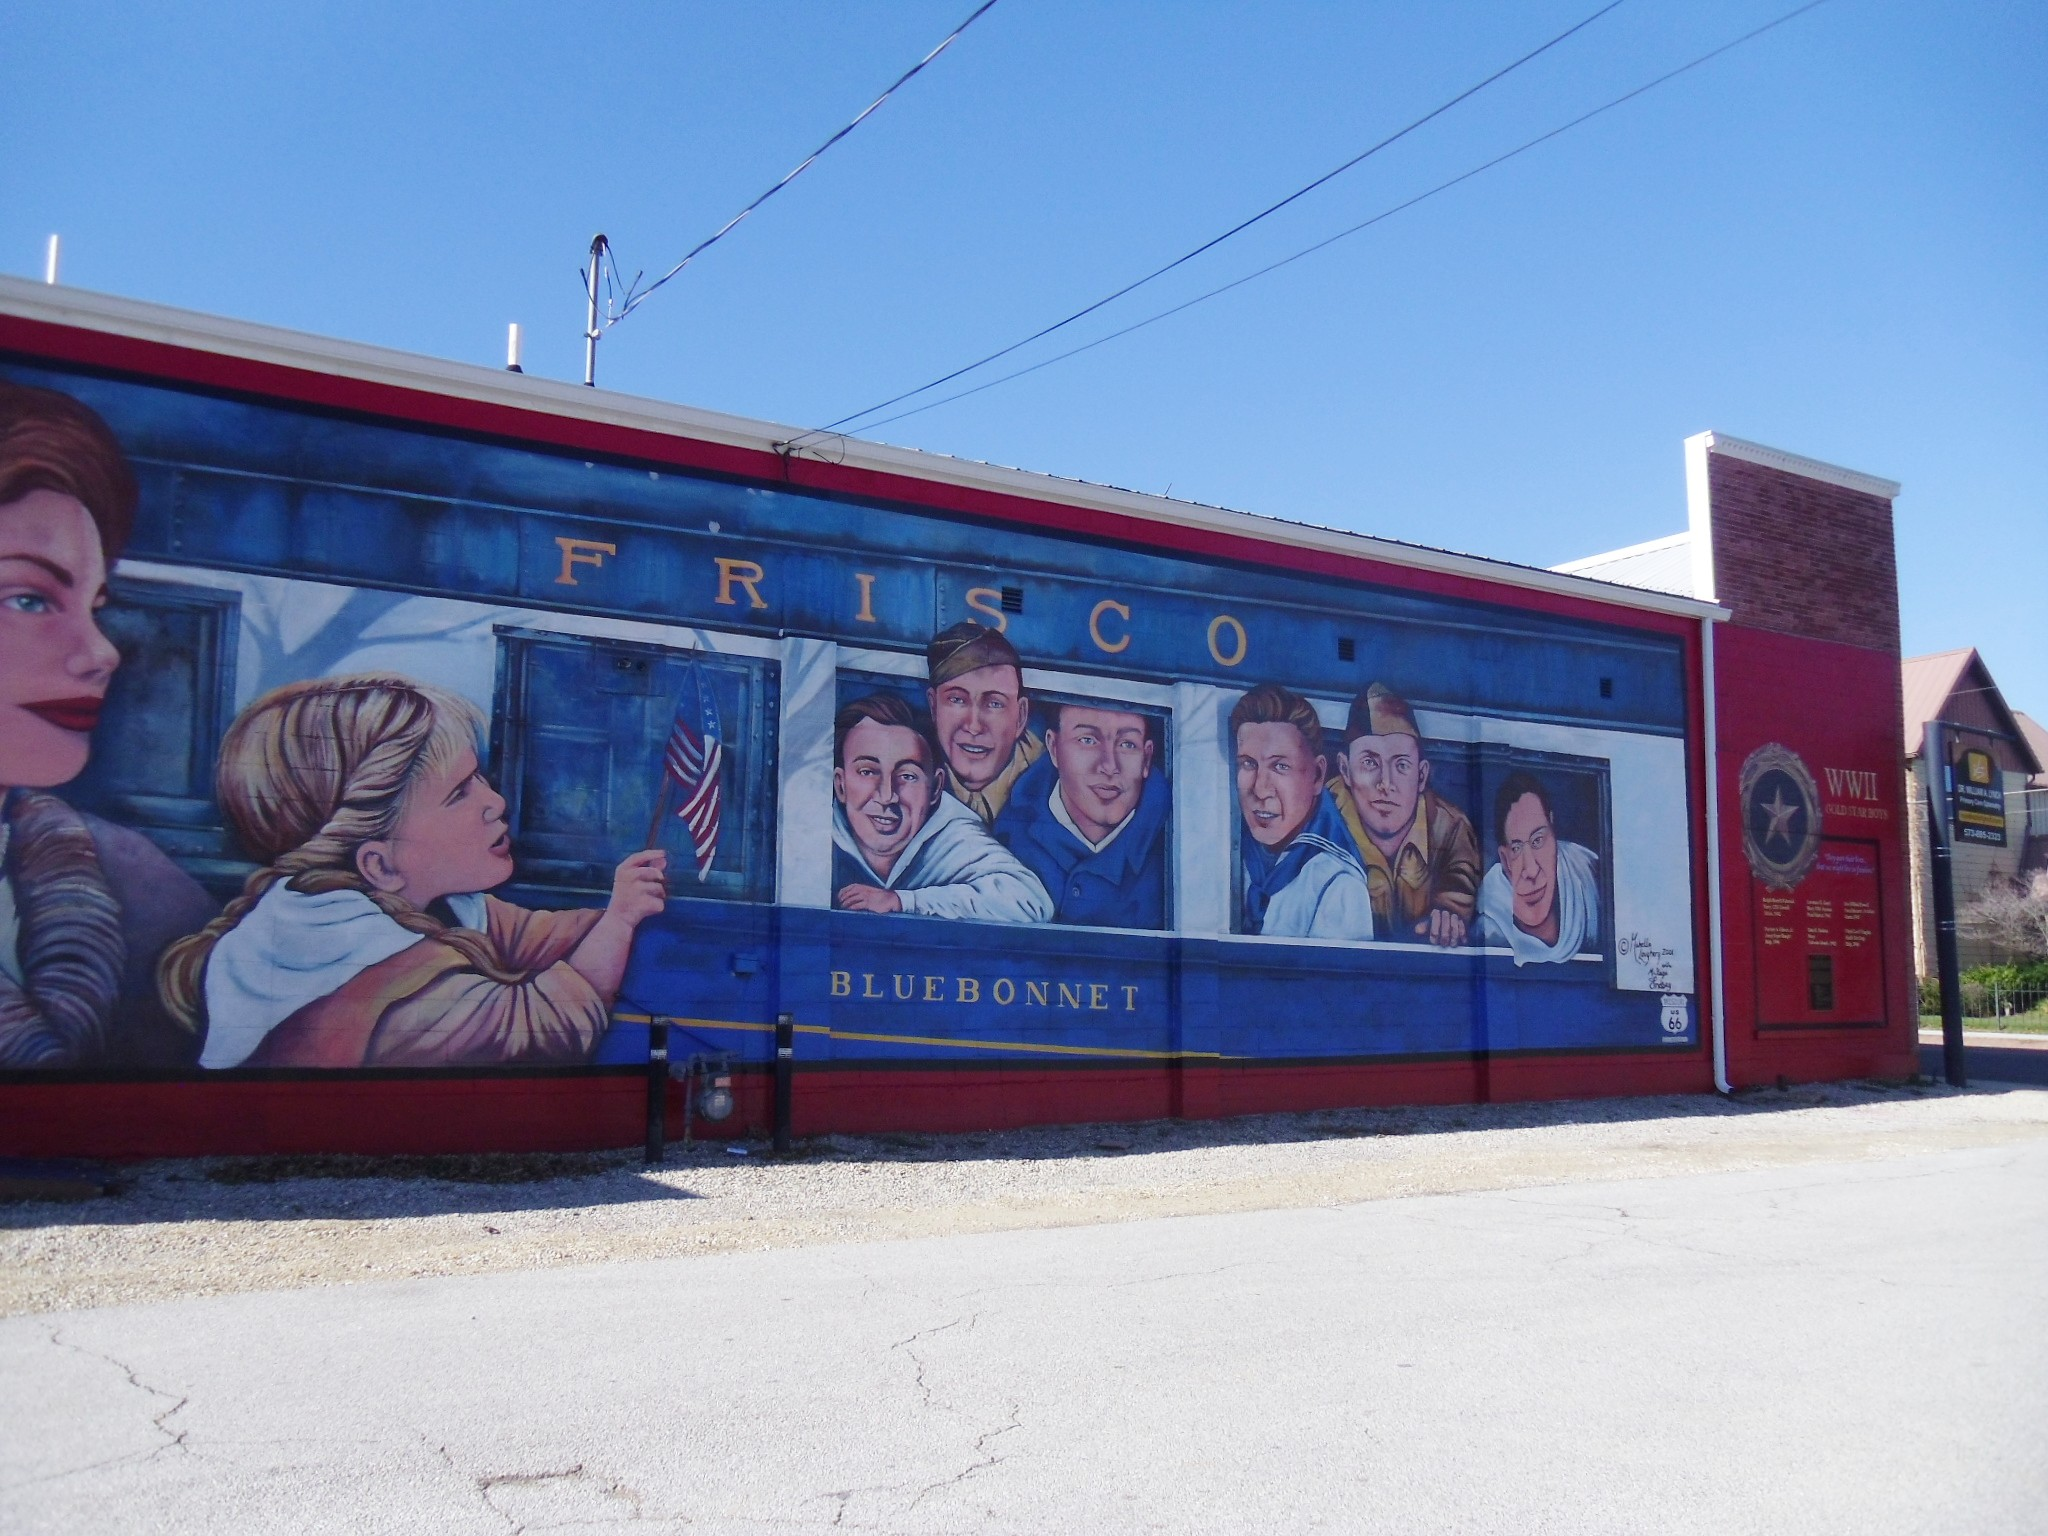 mural of little girl seeing soldiers return from war by train